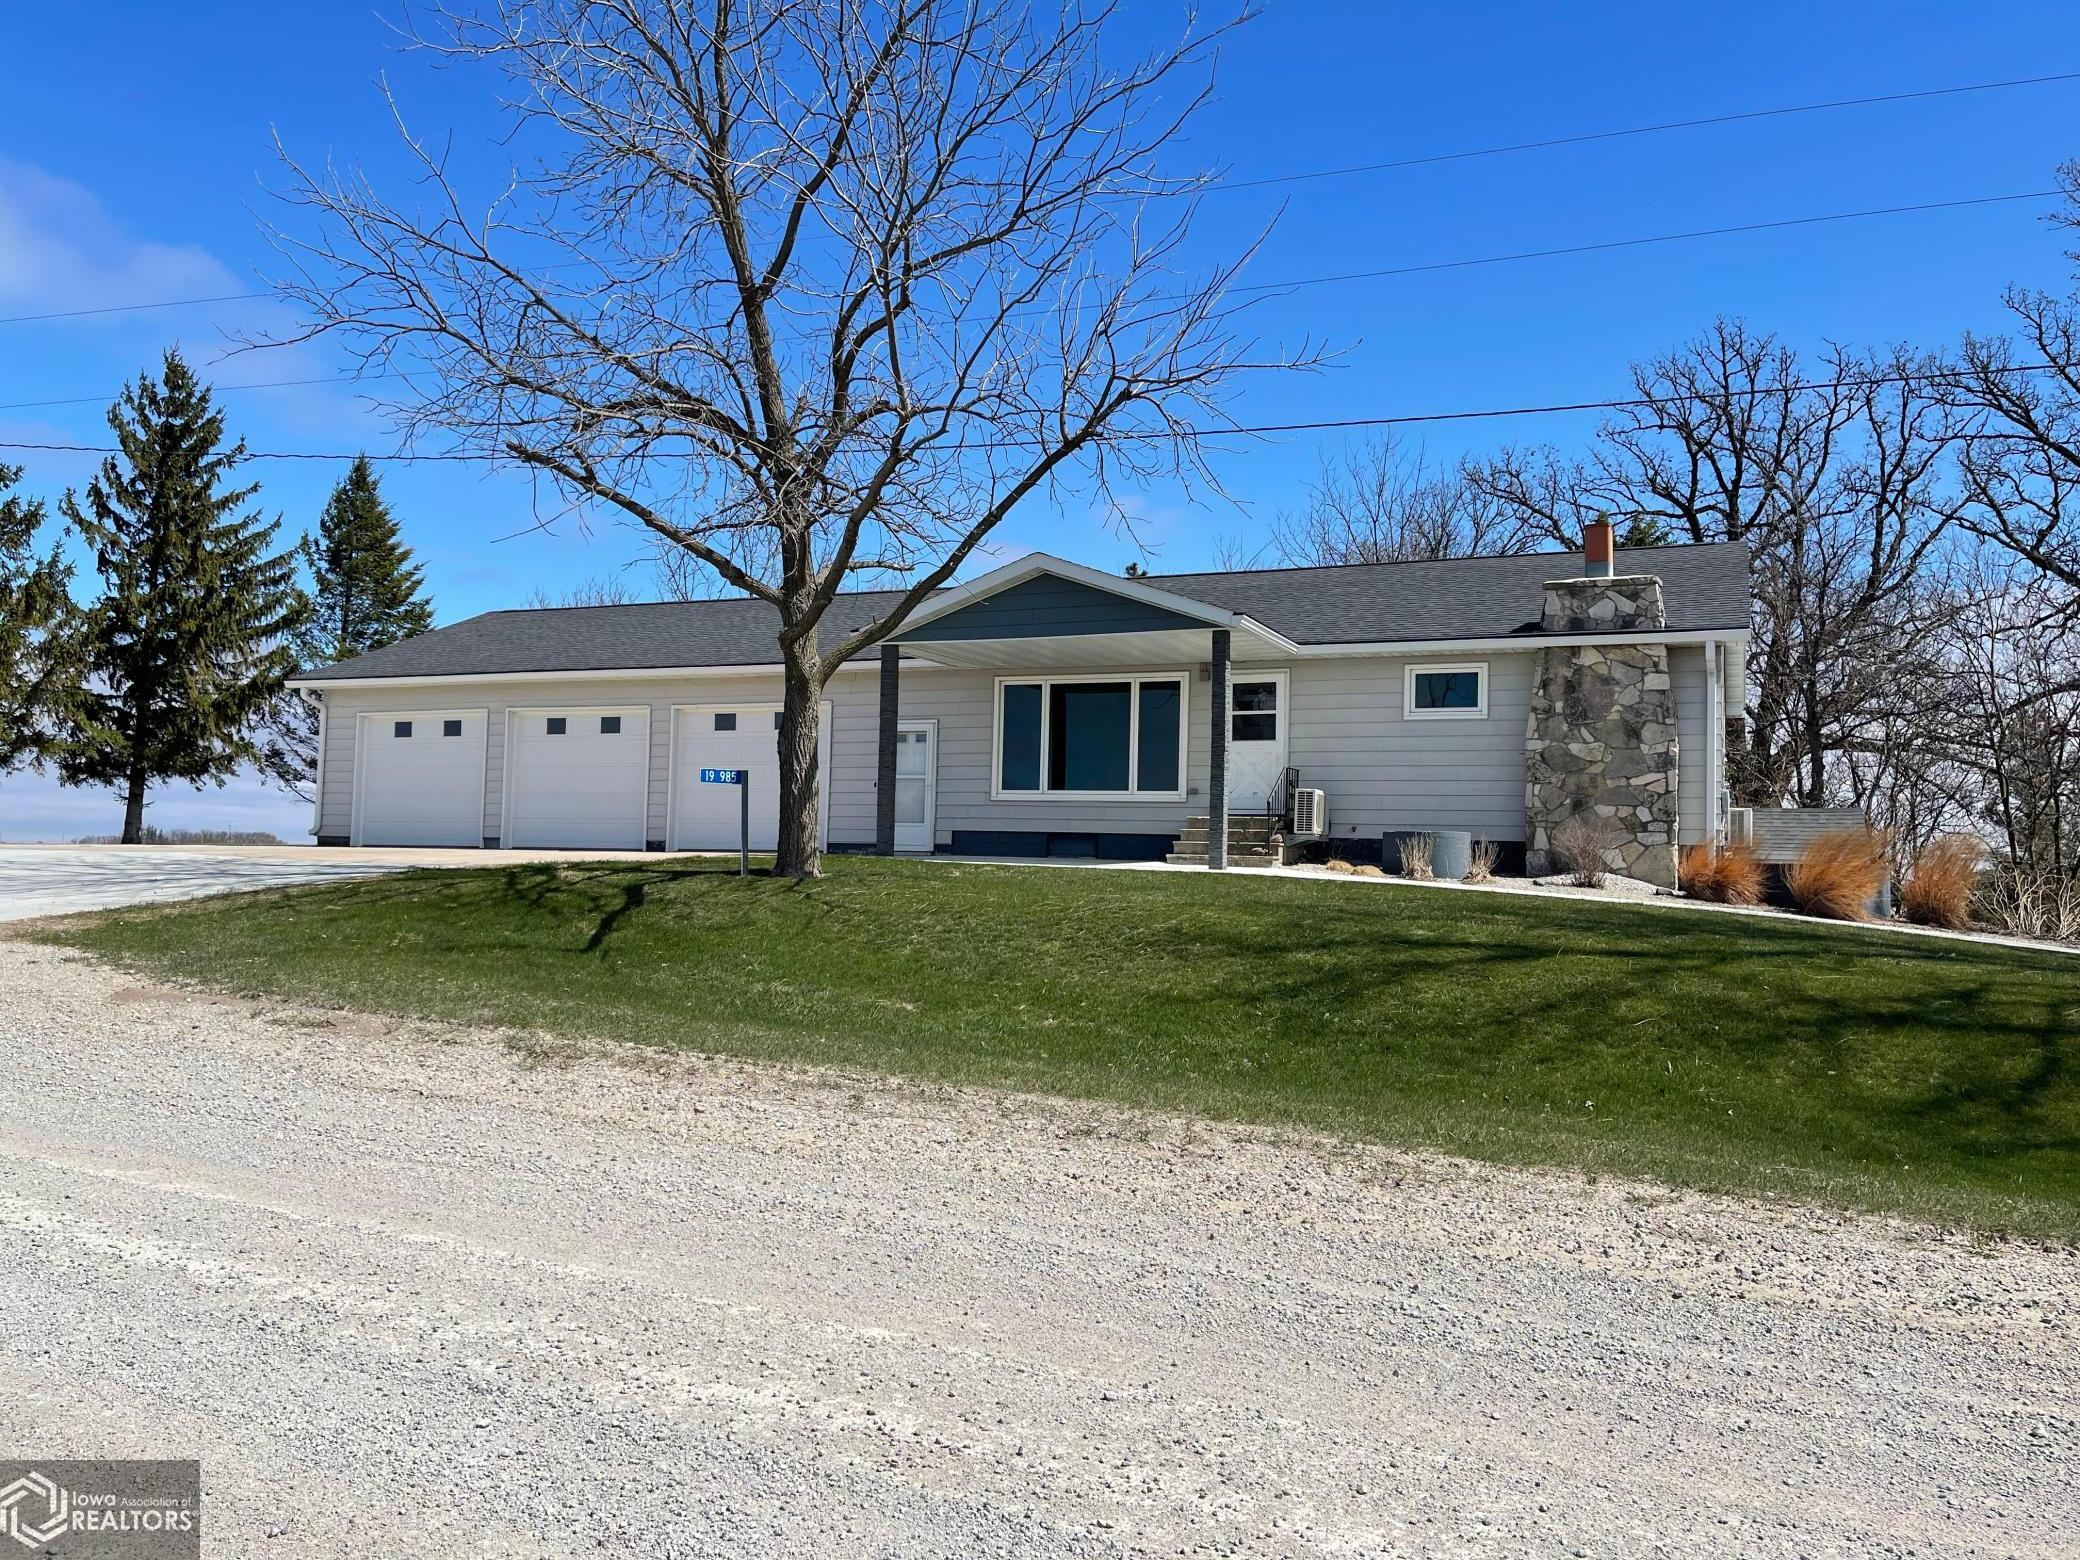 19985 Fir, Clear Lake, Iowa 50428-8954, 2 Bedrooms Bedrooms, ,1 BathroomBathrooms,Single Family,For Sale,Fir,5740533